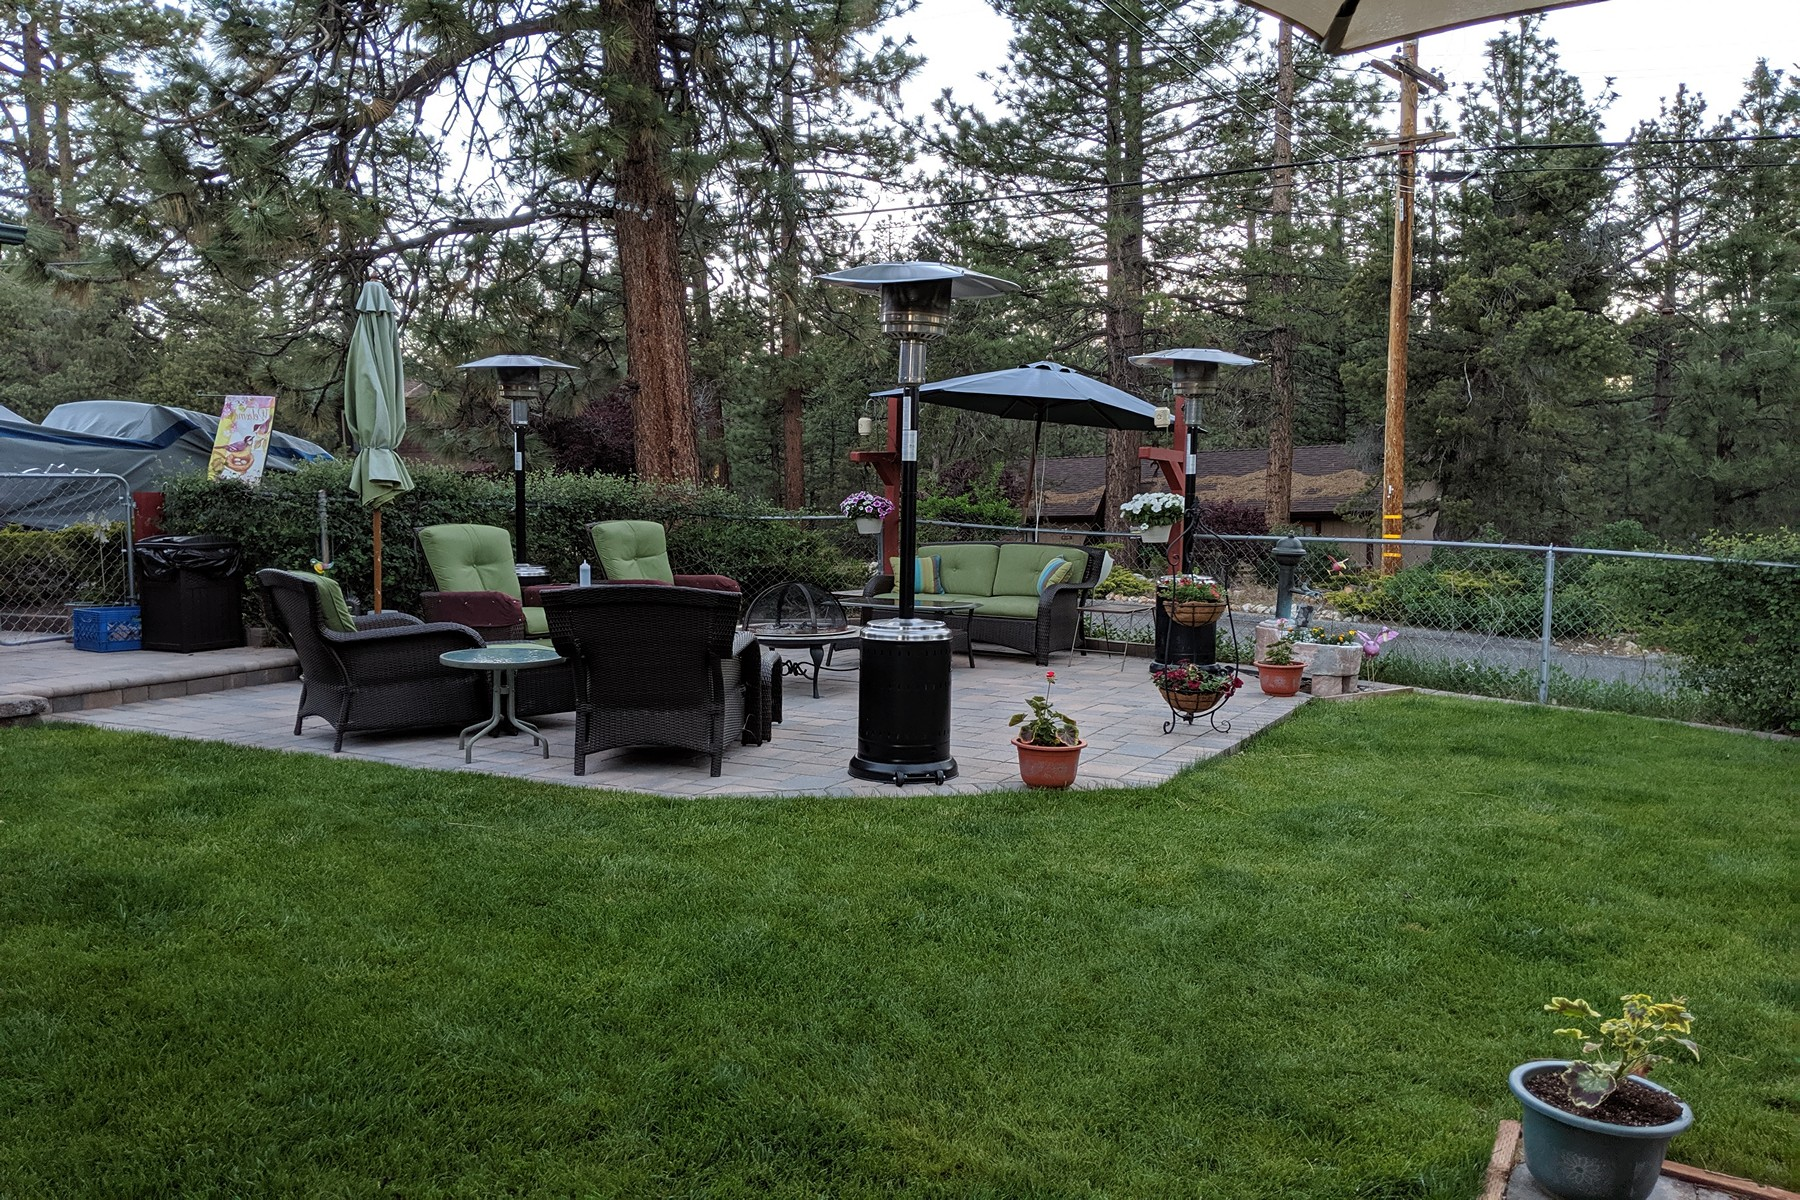 Single Family Homes for Sale at 322 Sites Way Big Bear City, CA 92314 322 Sites Way Big Bear City, California 92314 United States